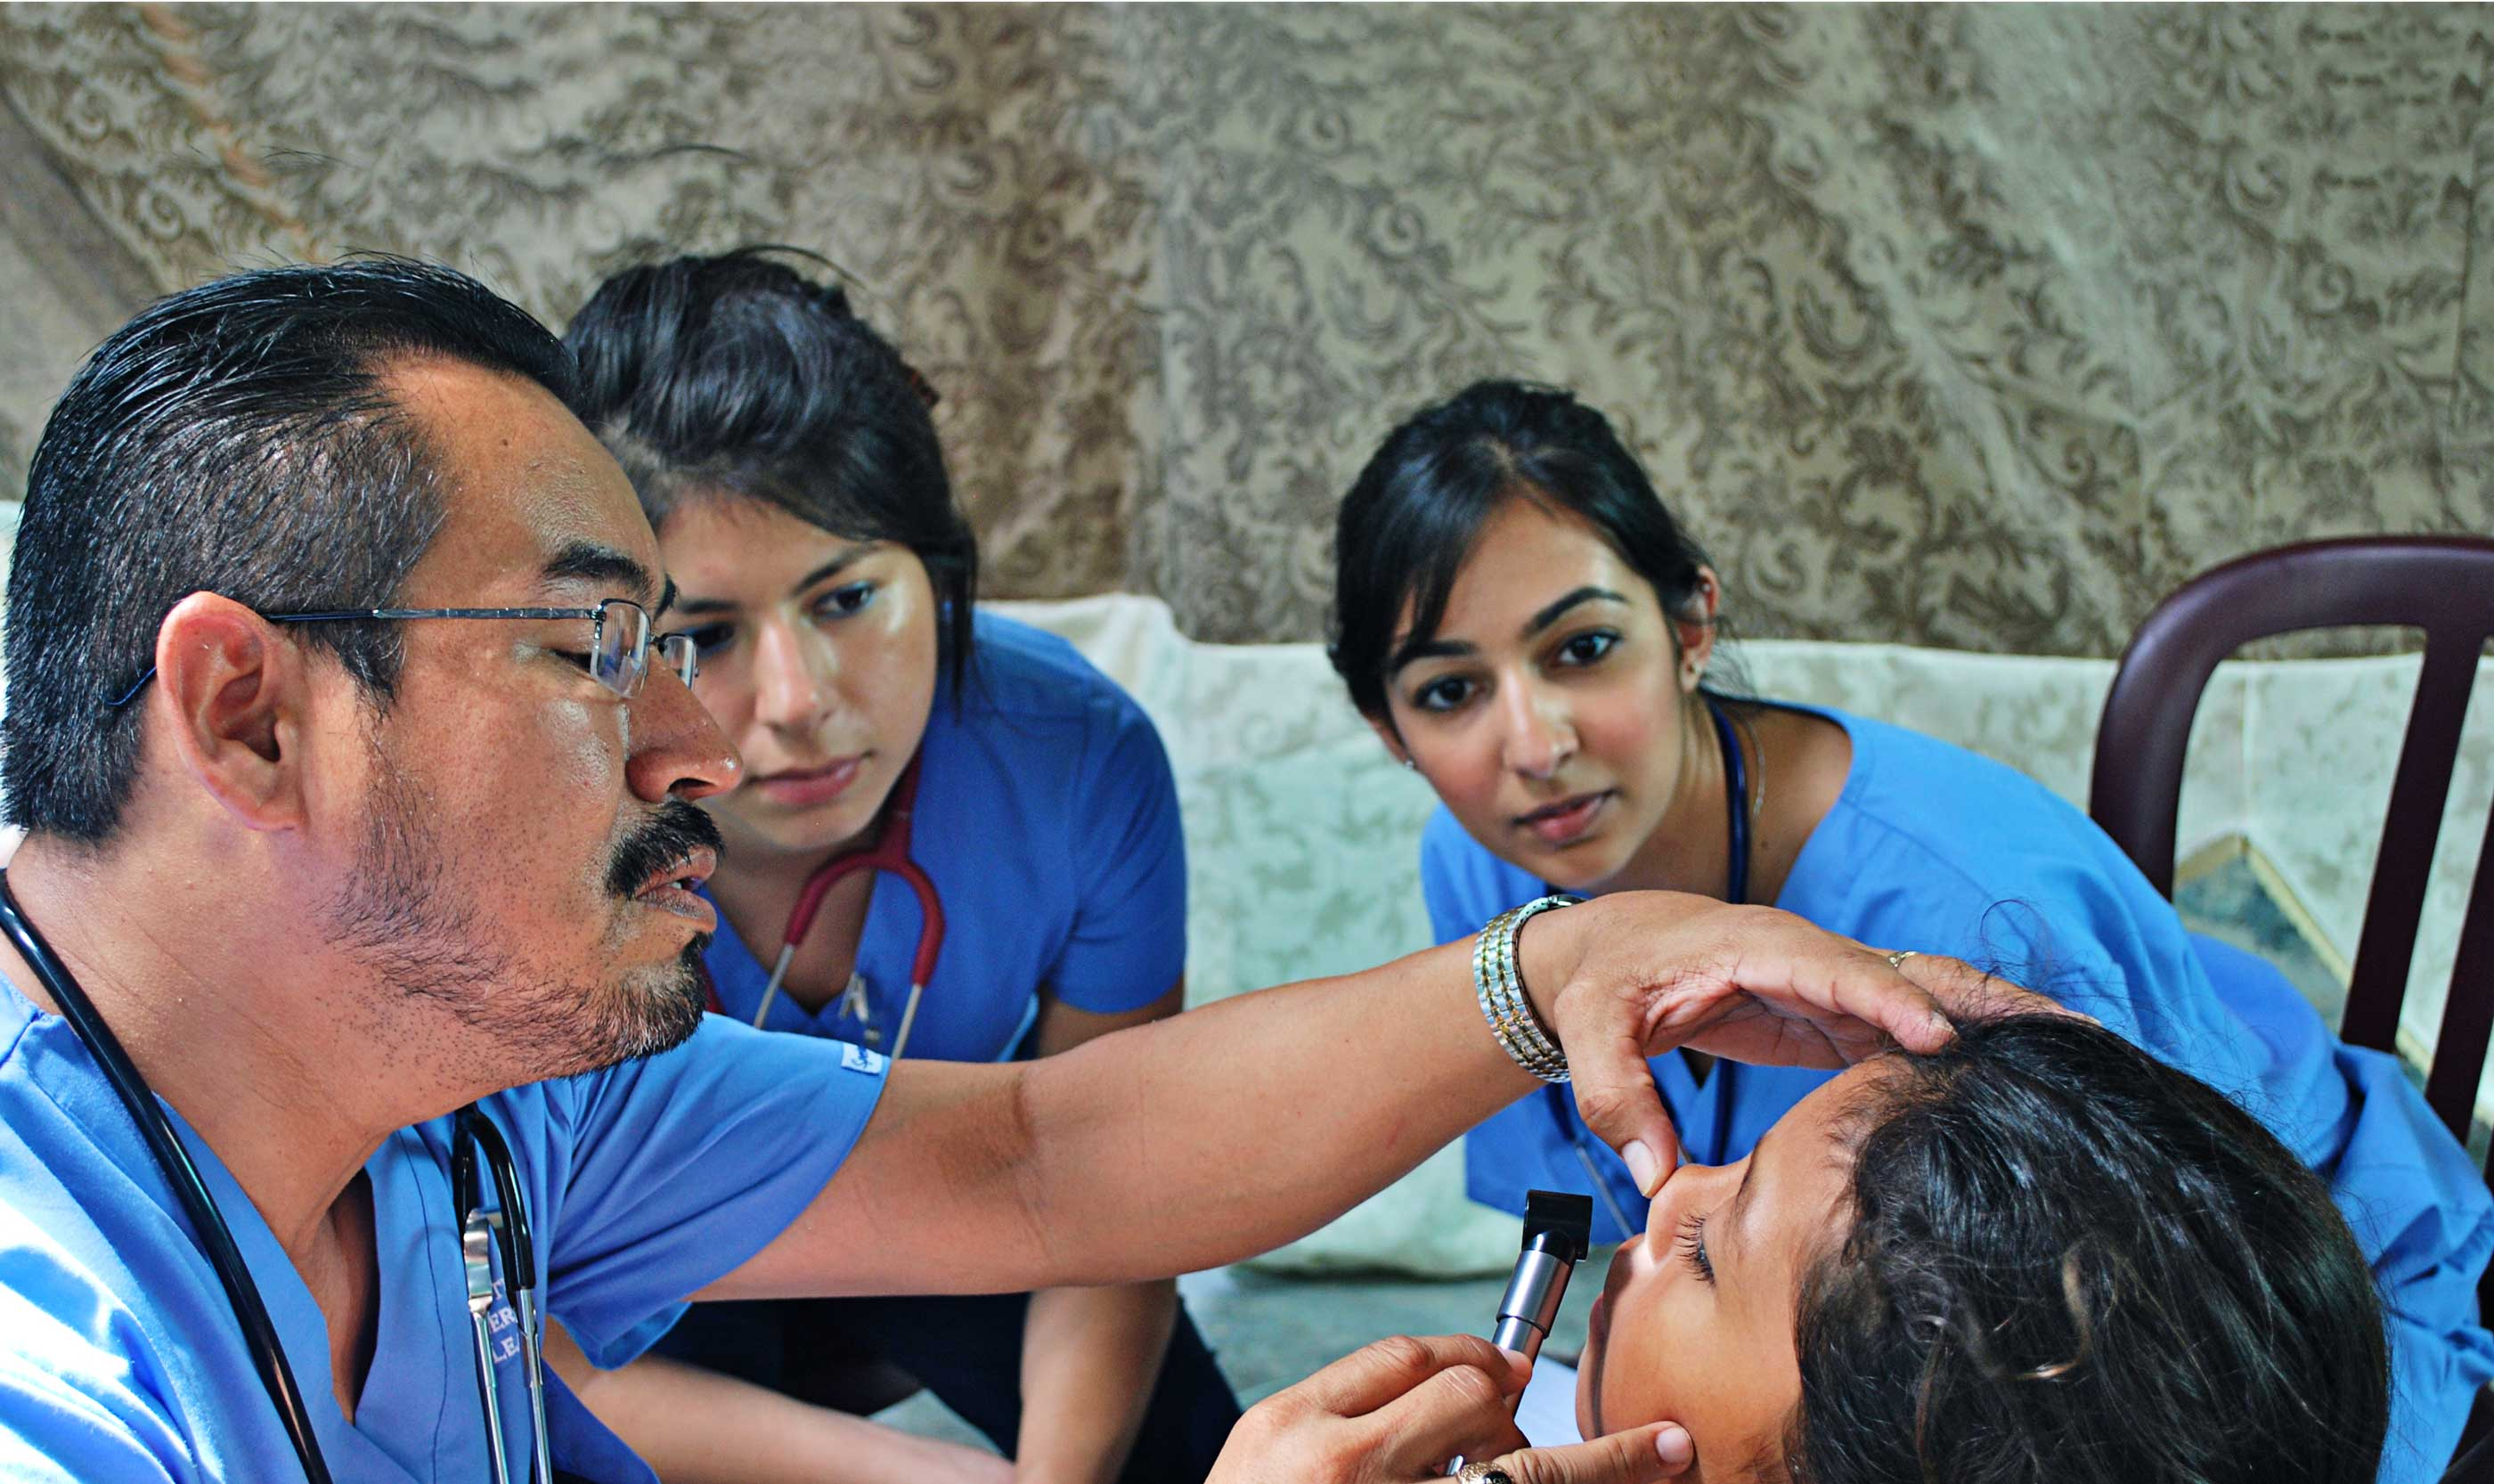 Volunteers Observe a Physical Exam